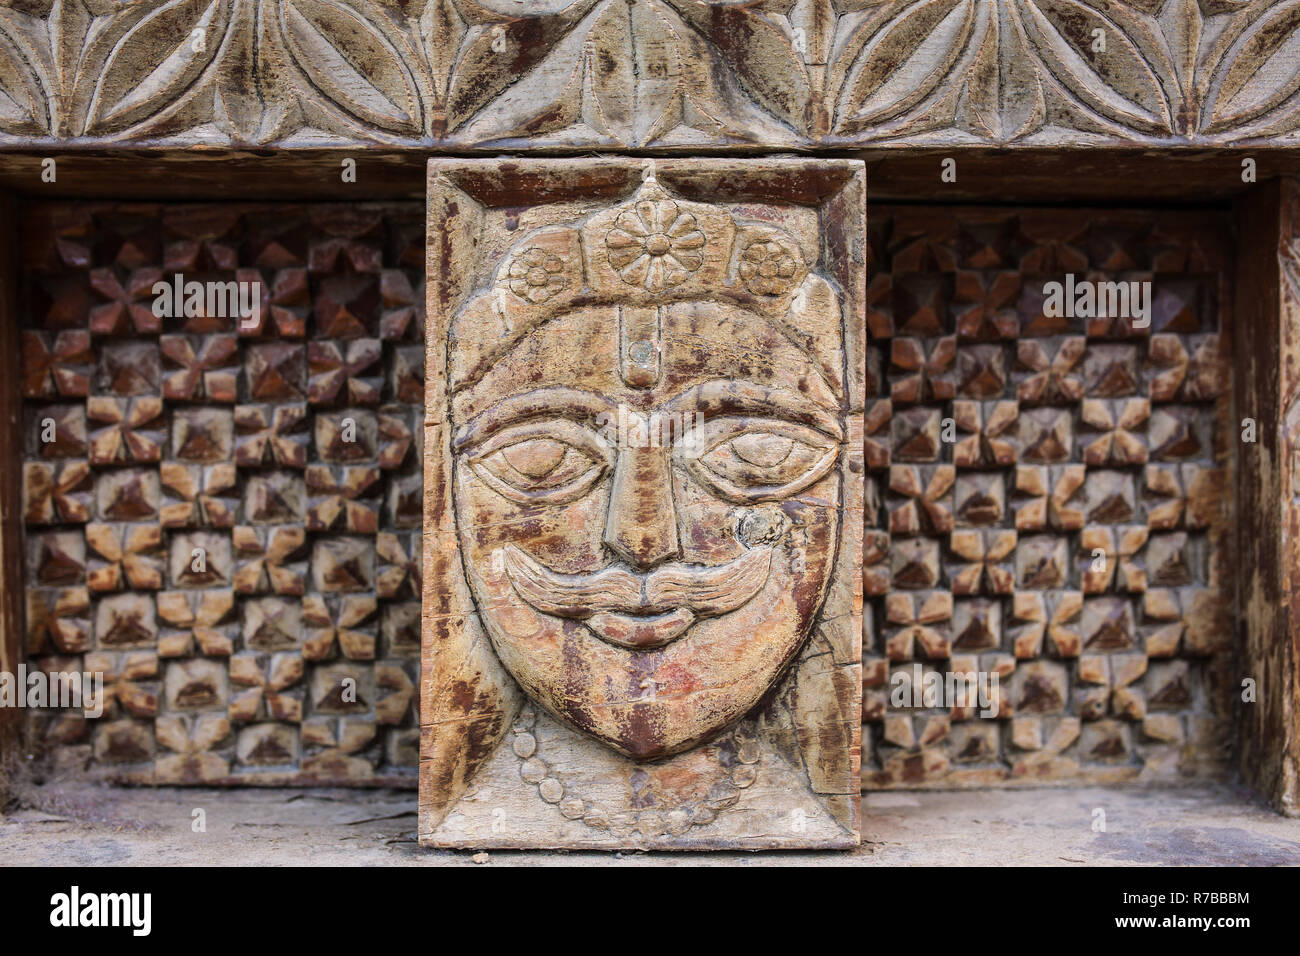 Vashisht, India - May 27, 2017: Traditional wooden carving on the hindu temple in Vashisht village in Kullu valley, Himachal Pradesh, India - Stock Image